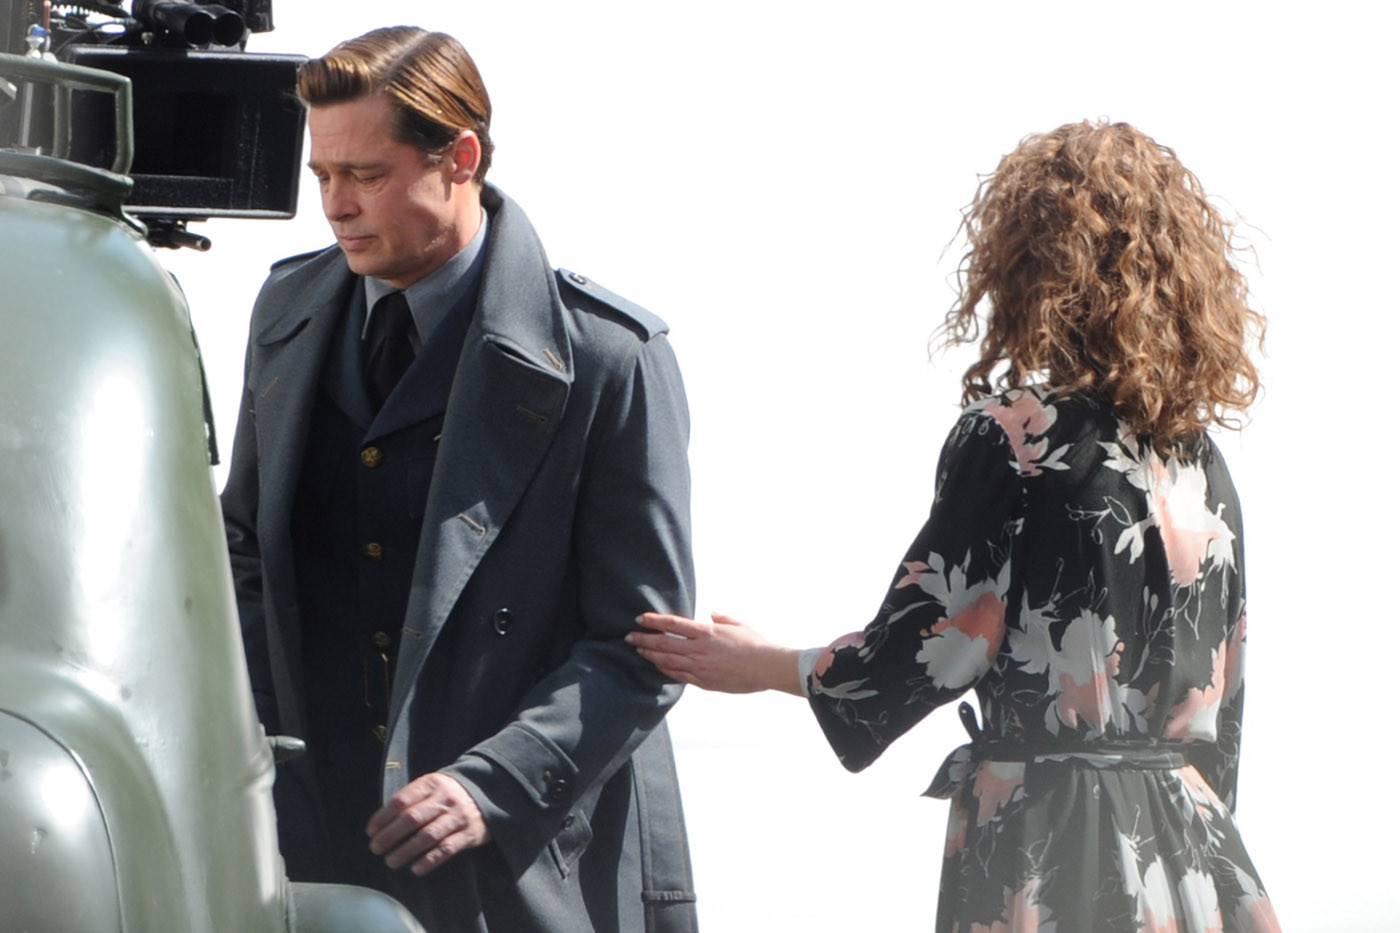 ** RESTRICTIONS: ONLY UNITED STATES, BRAZIL, CANADA ** London, UNITED KINGDOM - London, UK - Brad Pitt and co-star Lizzy Caplan on set filming